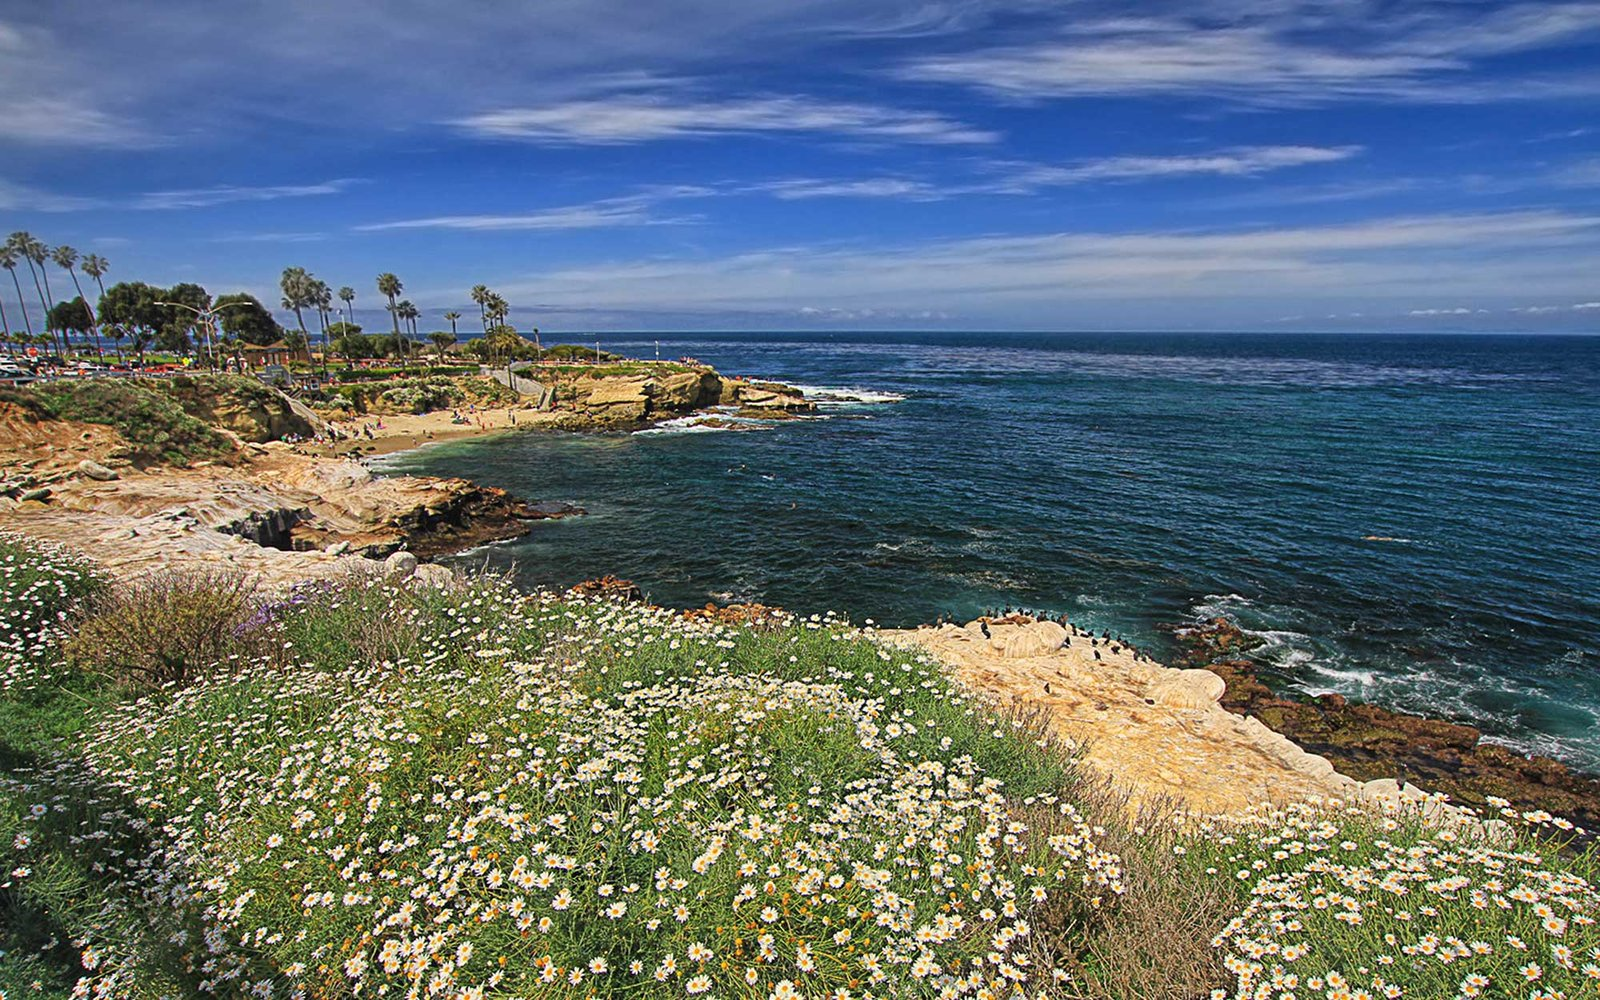 Beautiful La Jolla Cove, California